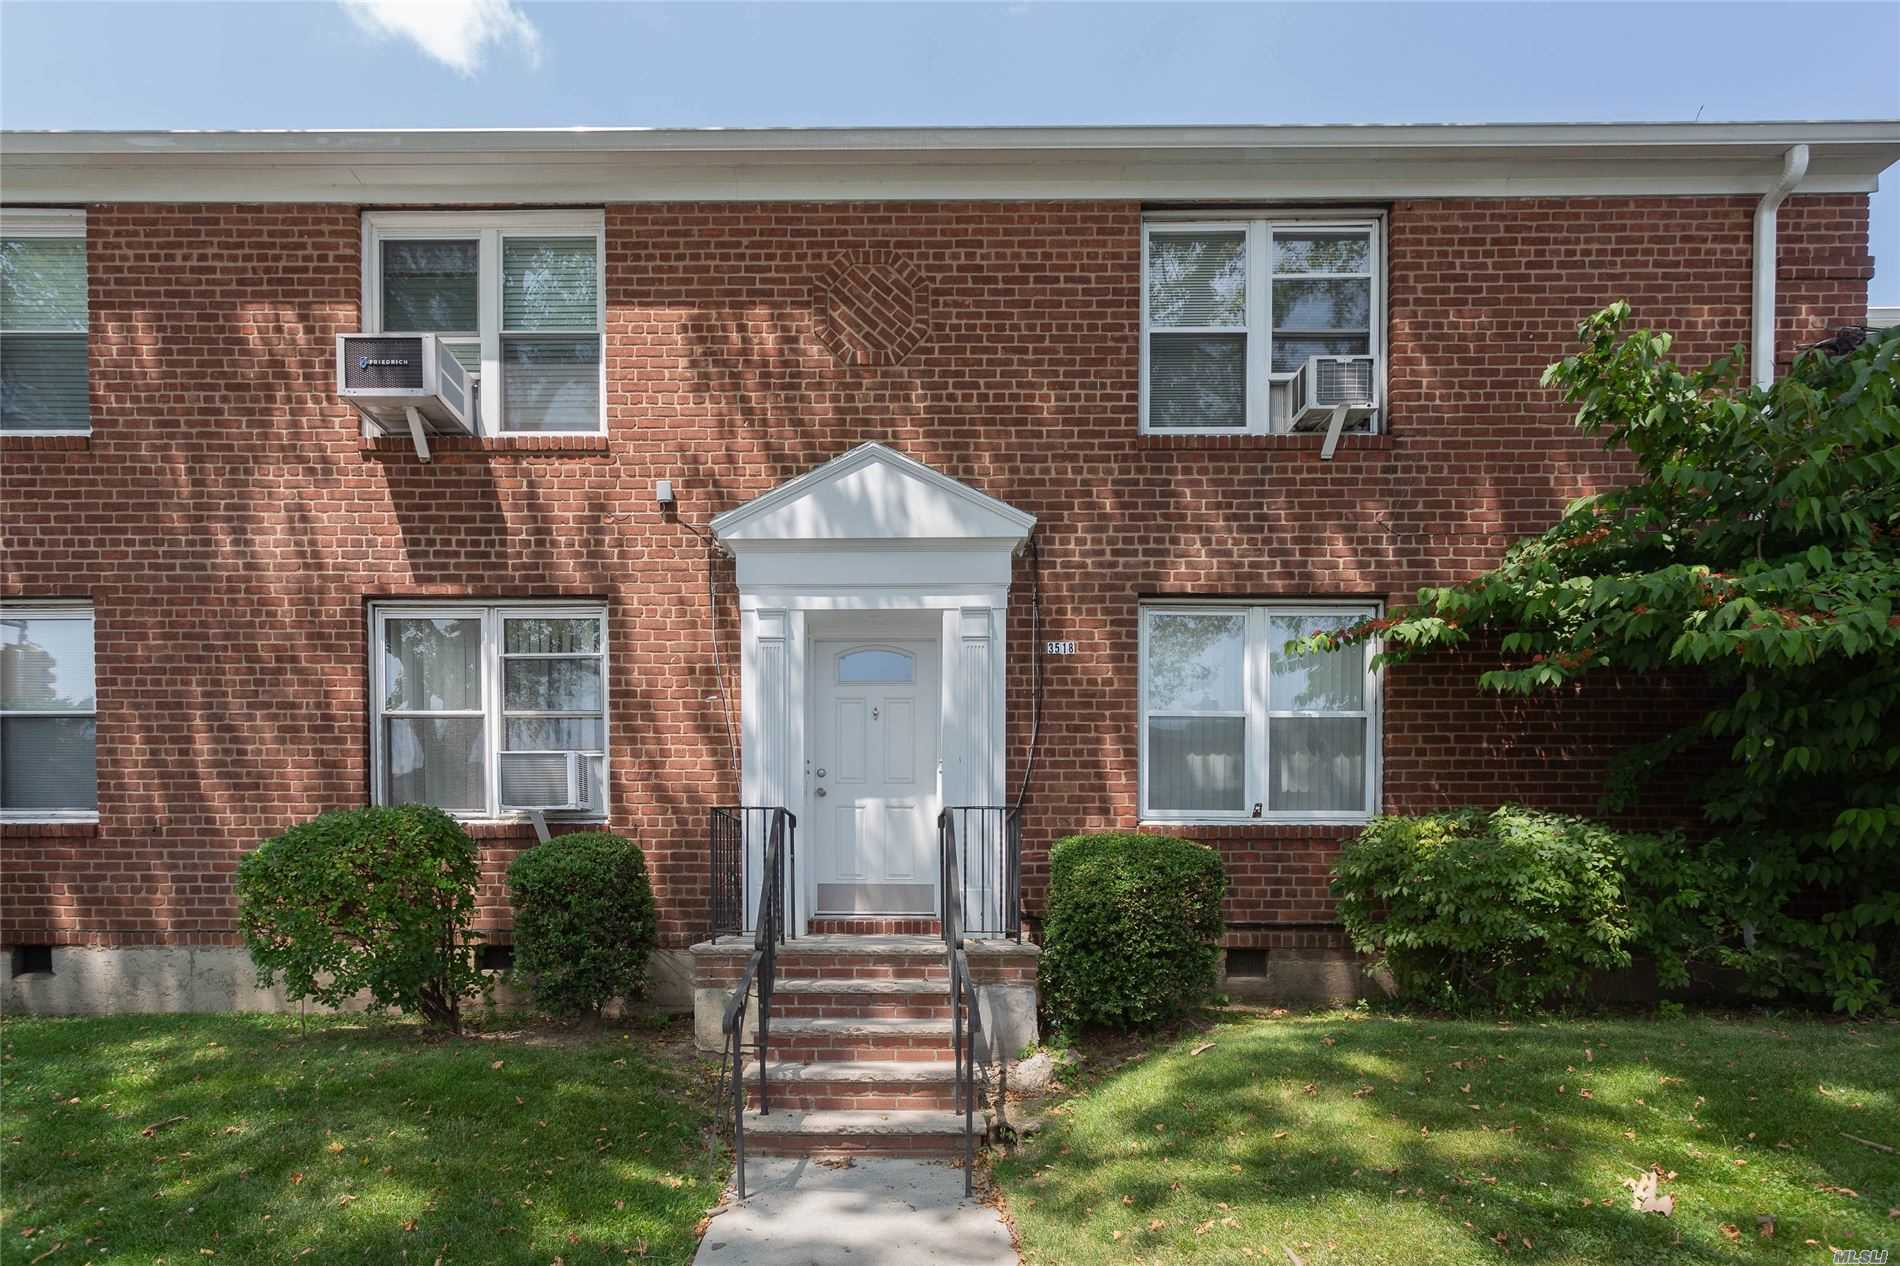 35-18 192nd Street 11358 - One of Flushing Homes for Sale